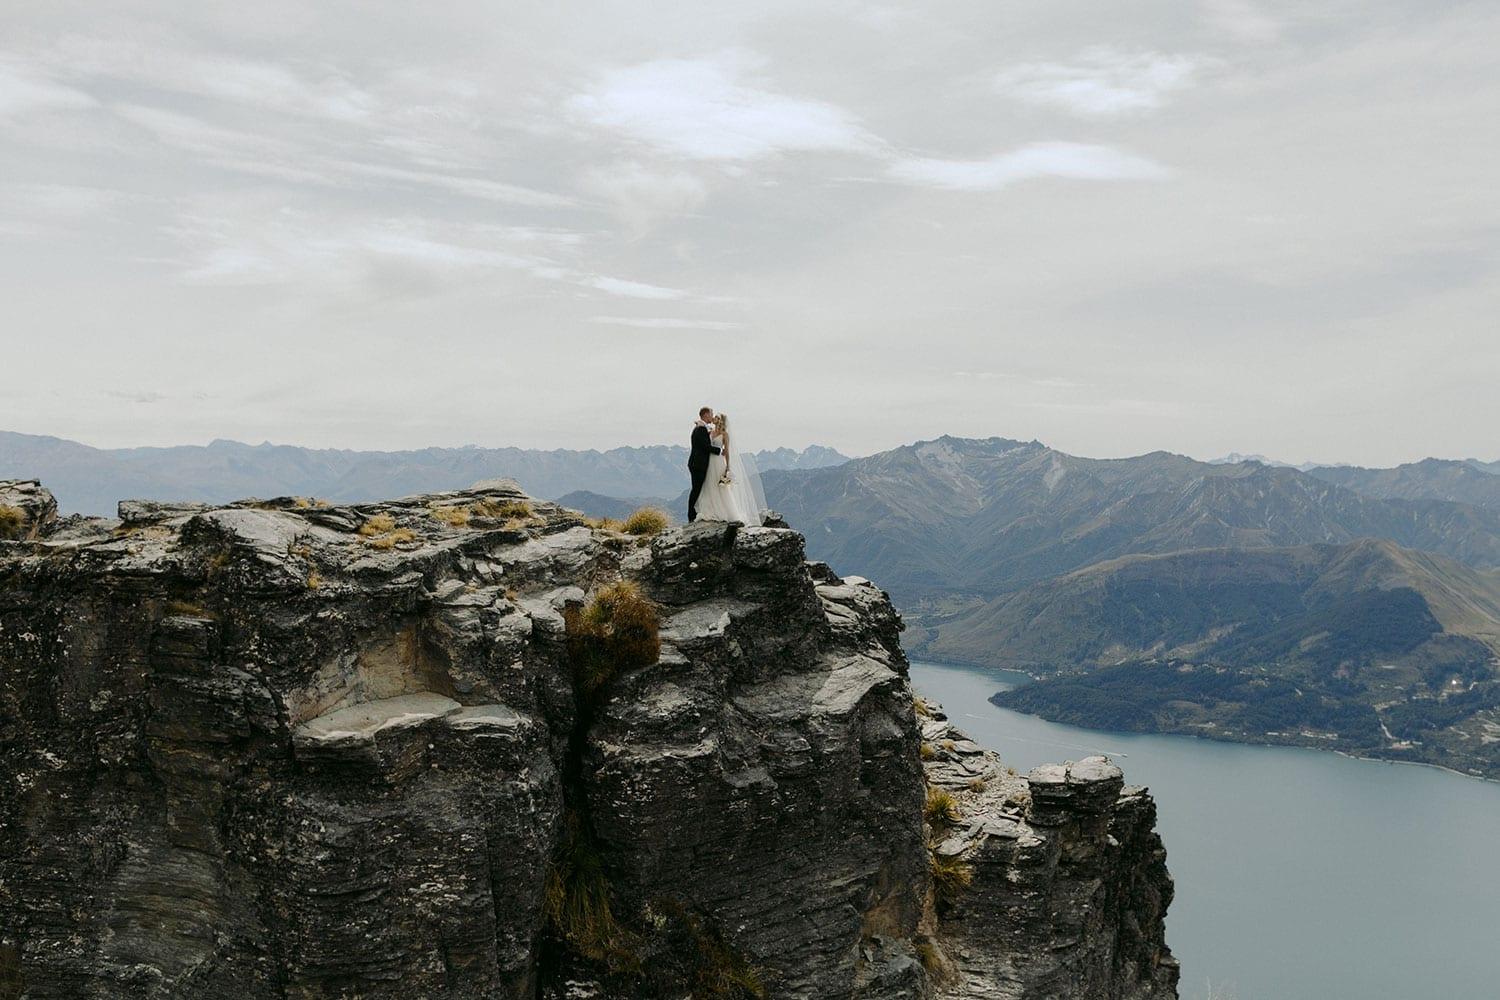 Vinka Design Features Real Weddings - bride in custom made Keiko gown from the Oriental affair collection with additional delicate dimensional flower lace added to the bodice and beading added to the skirt layers. Bride and groom embrace on the cliffs with Lake Hays in the background